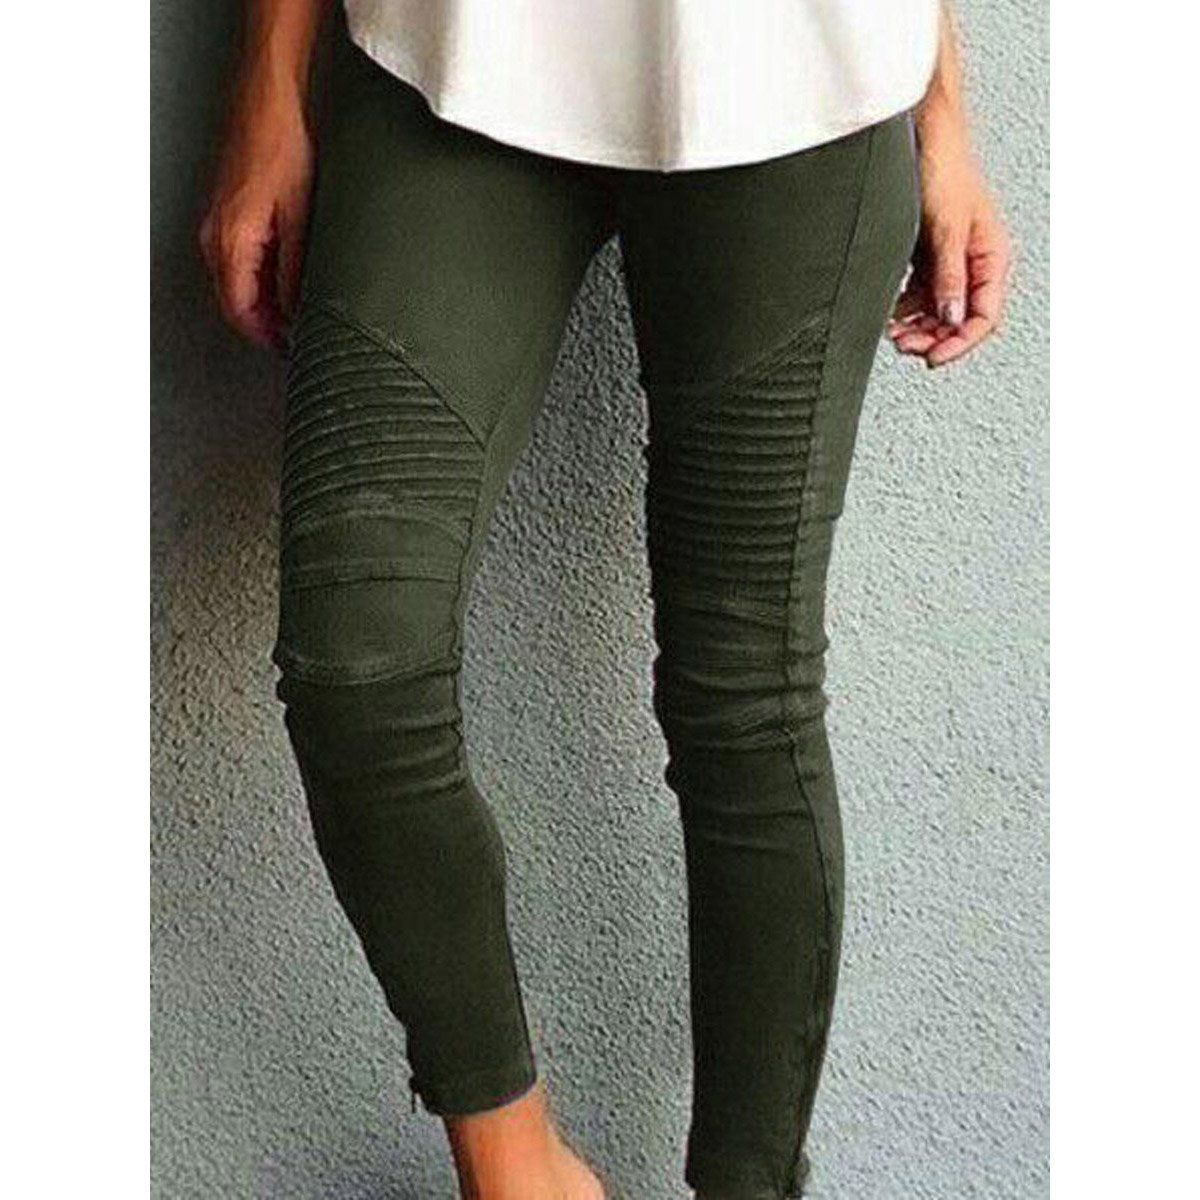 39472218 | 3A Style Jeans Outlet | Pages Directory